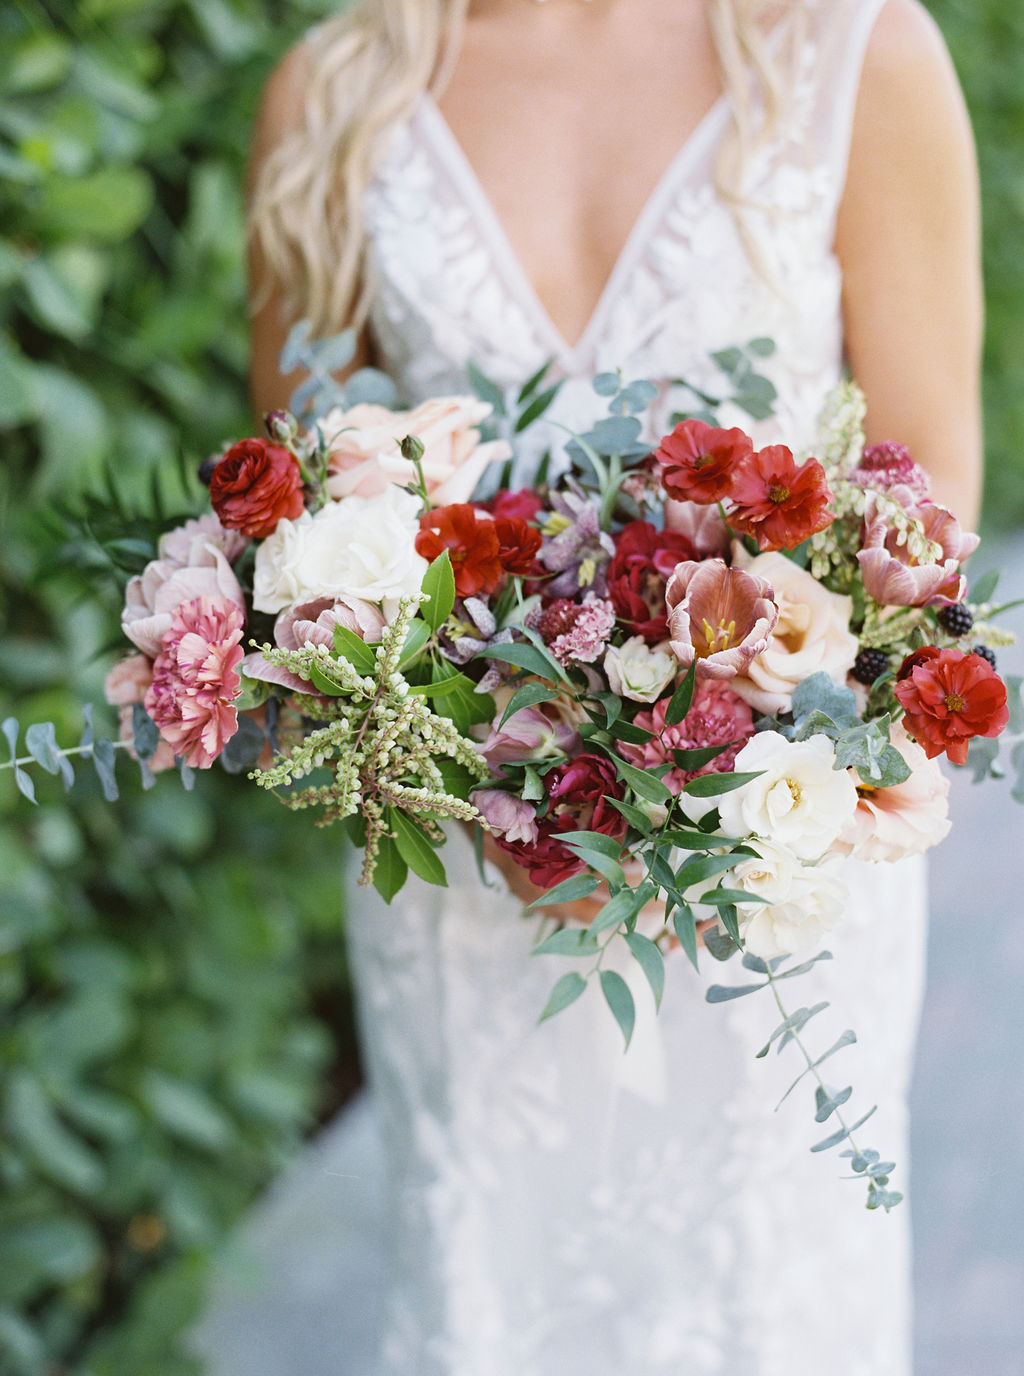 Another stunning wedding in the books with  Ever After Floral Design's  incredible bouquet overflowing with poppy, verbena, and carnations ….. And do i see blackberries? Yum!